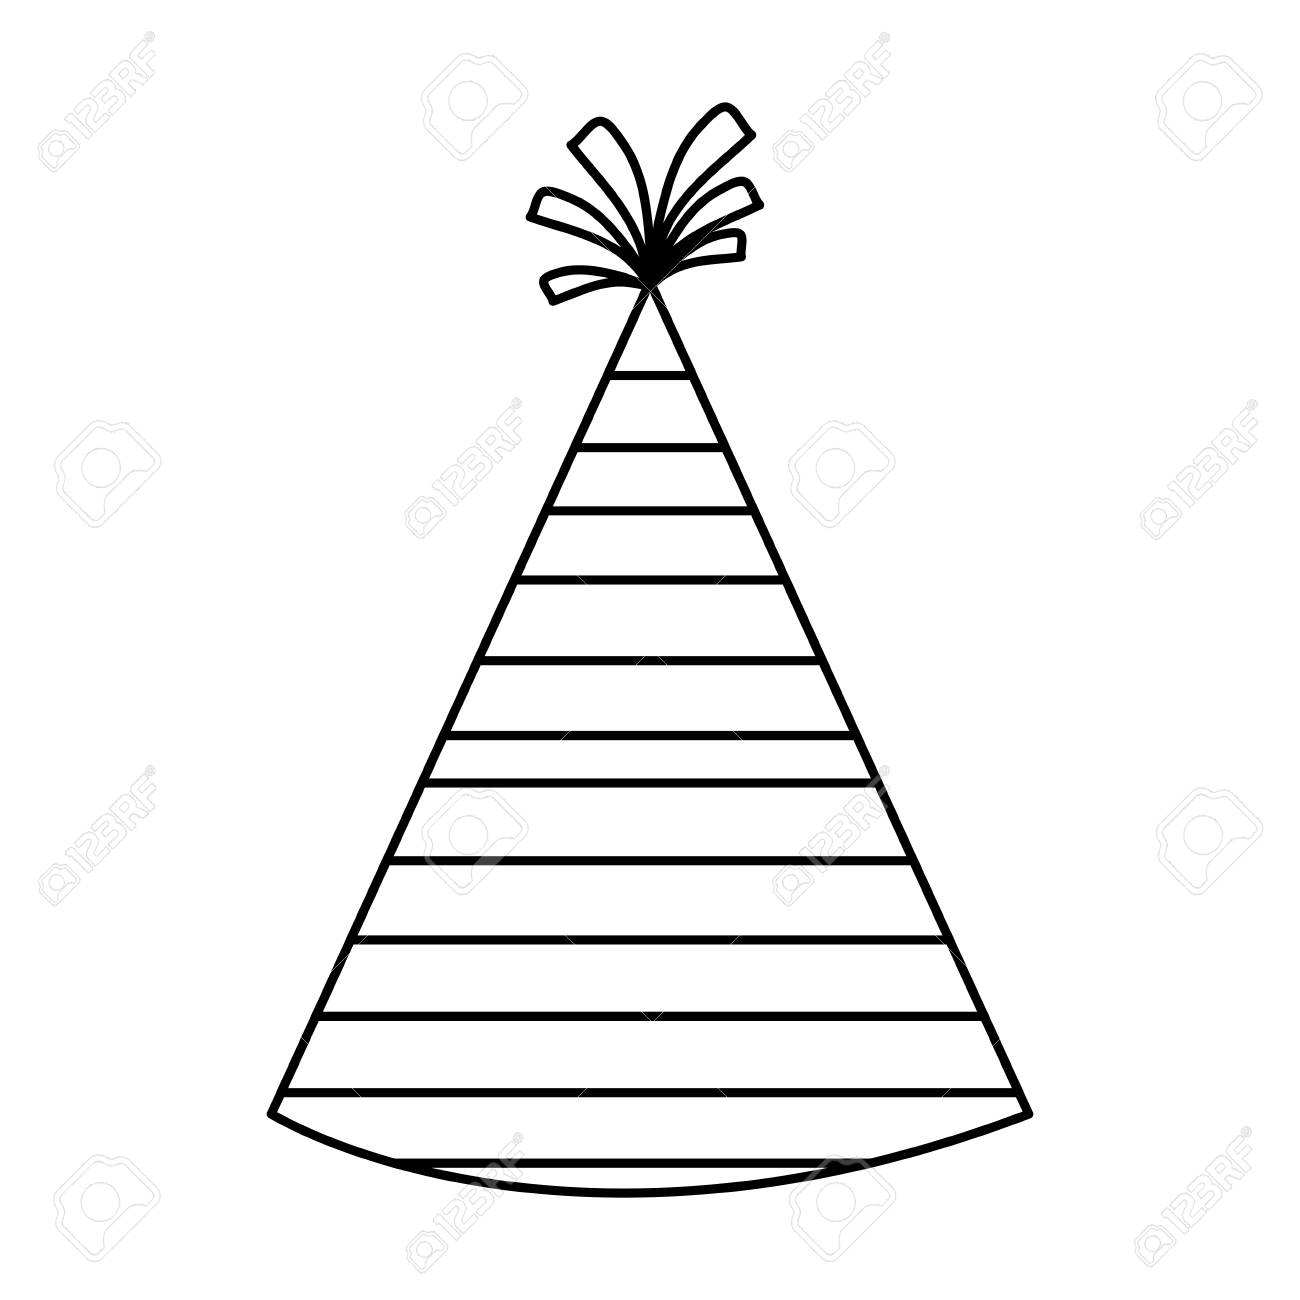 Party Hat Clipart Black And White Party Hat With Stripes Over White Background Vector Illustration